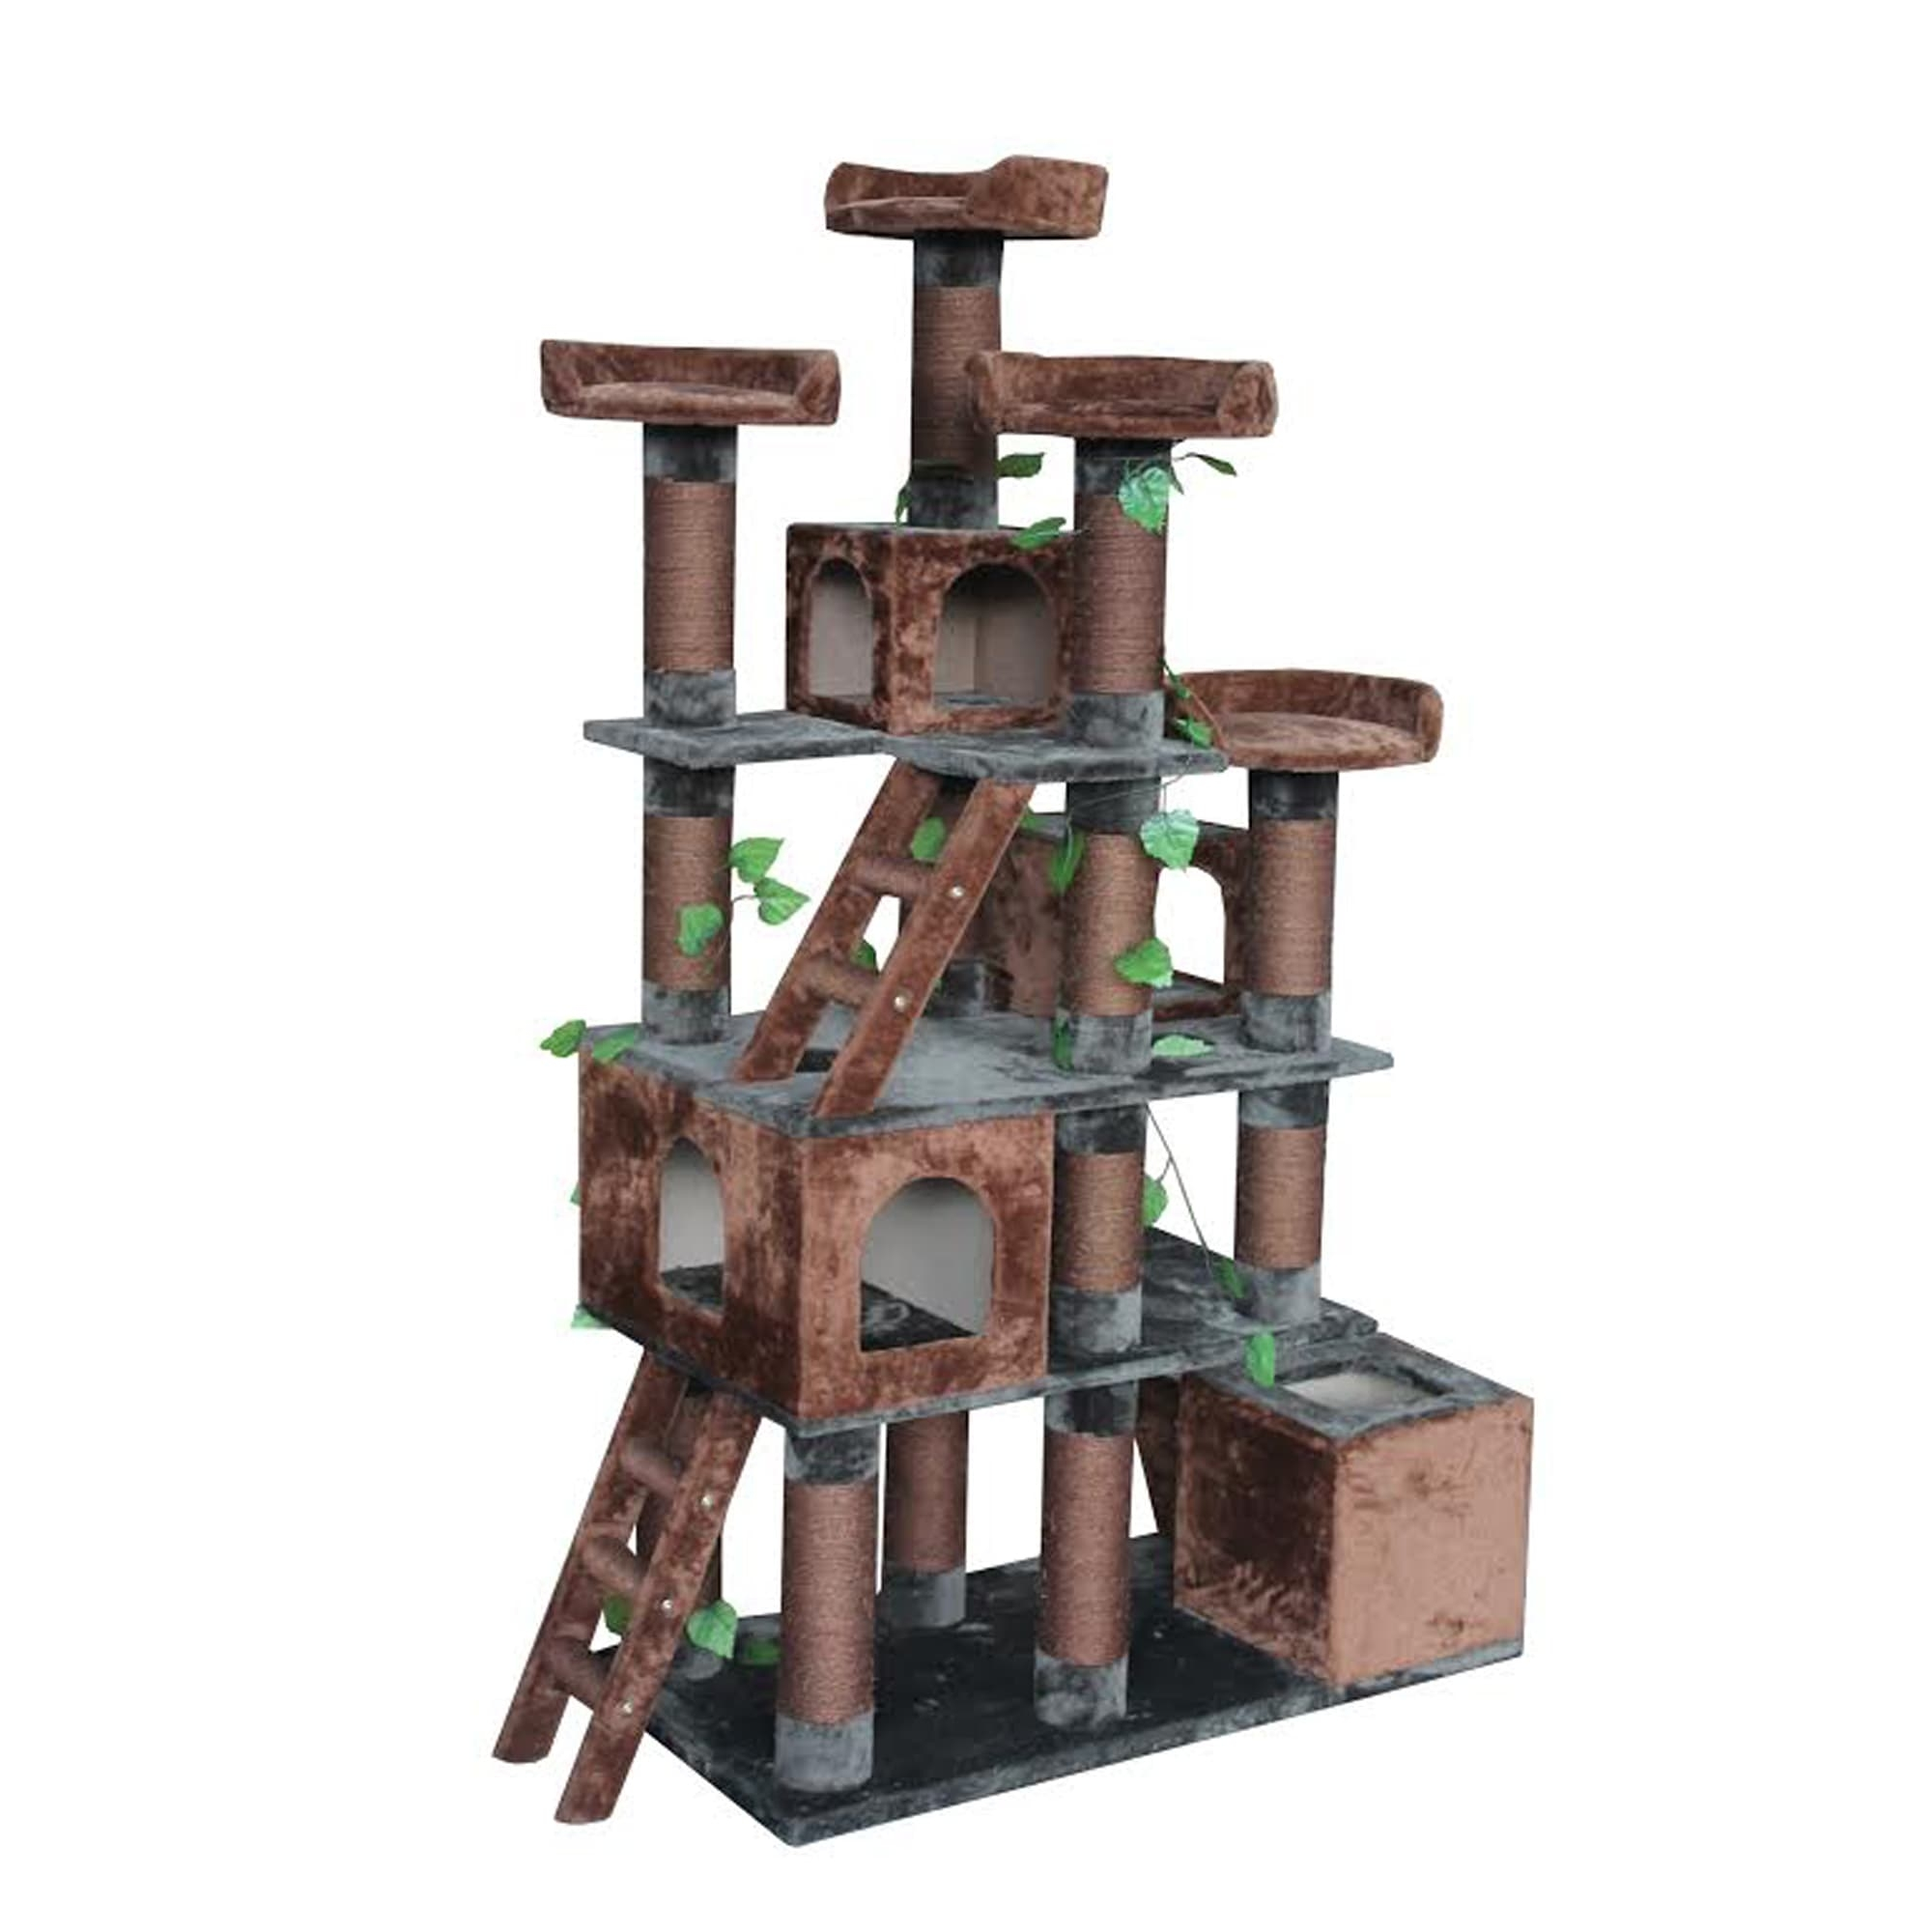 Cat Trees For Large Cats You Ll Love In 2021 Visualhunt